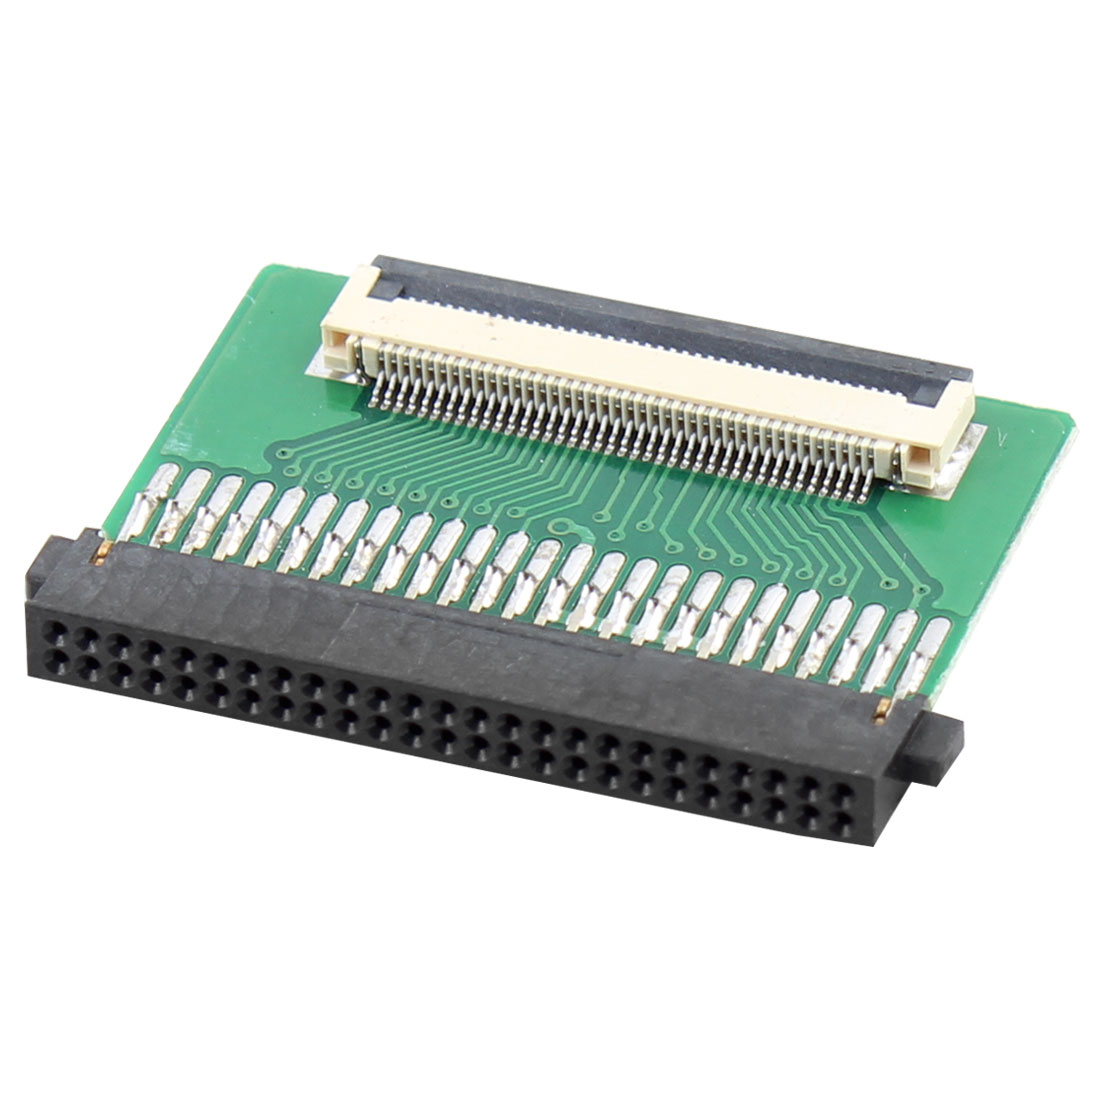 "50 Pin Male 1.8"" IDE to CE 1.8"" PC Converter Adapter"